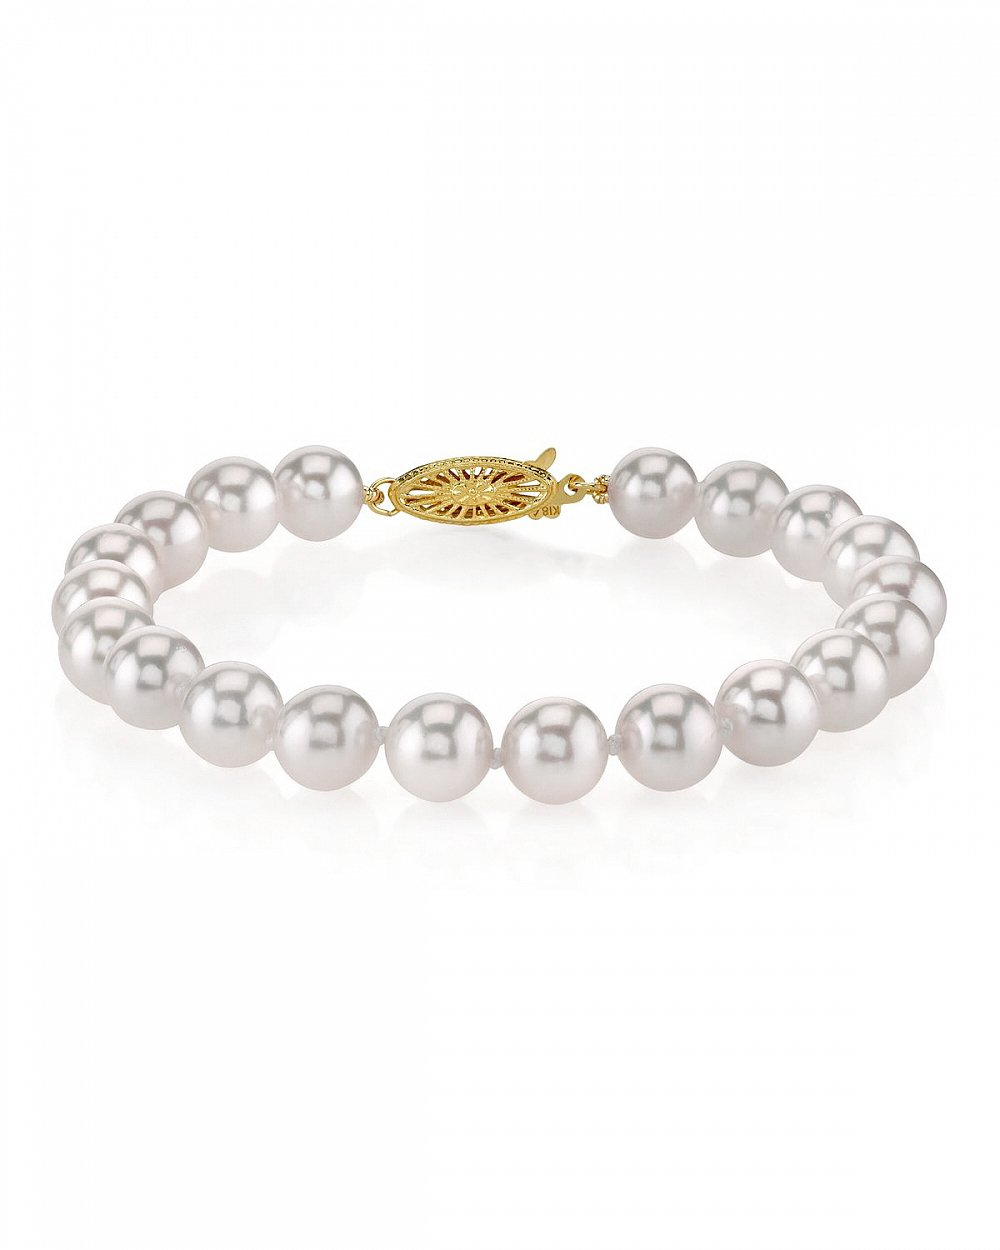 18K Gold 7.5-8.0mm Japanese Akoya Saltwater White Cultured Pearl Bracelet - AAA Quality